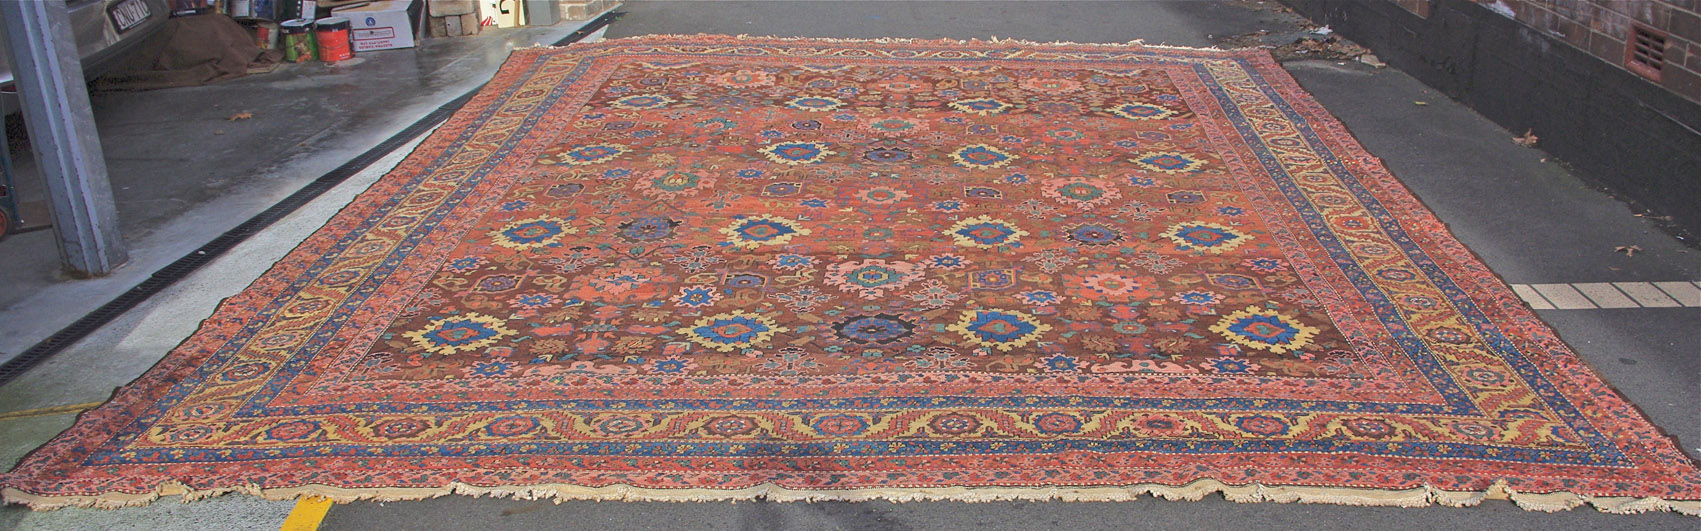 Bakshaish carpet Persia 490 x 375 cm